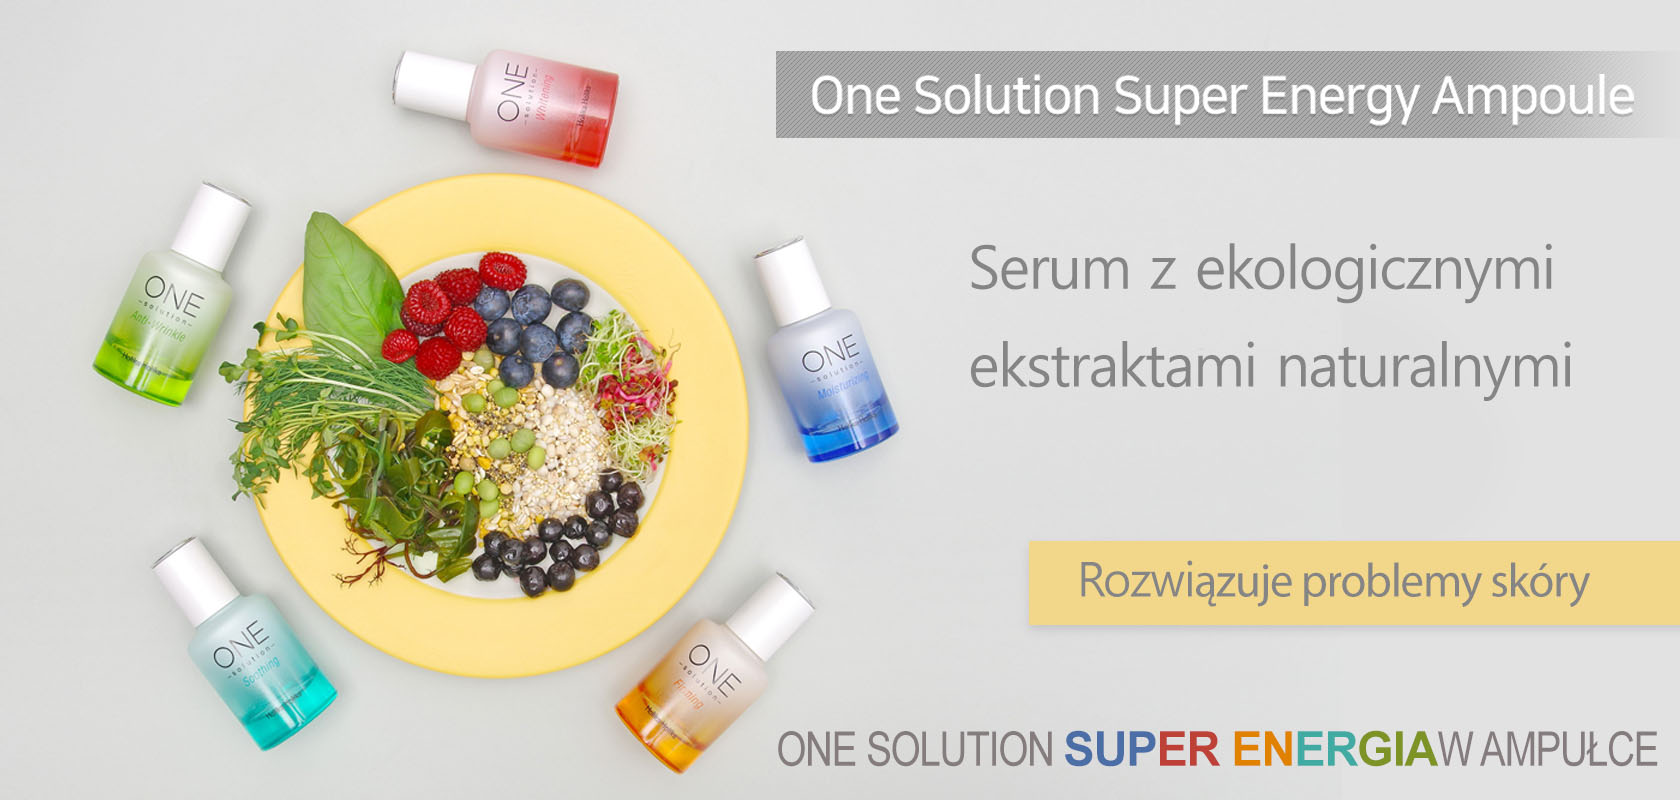 One Solution Ampoule